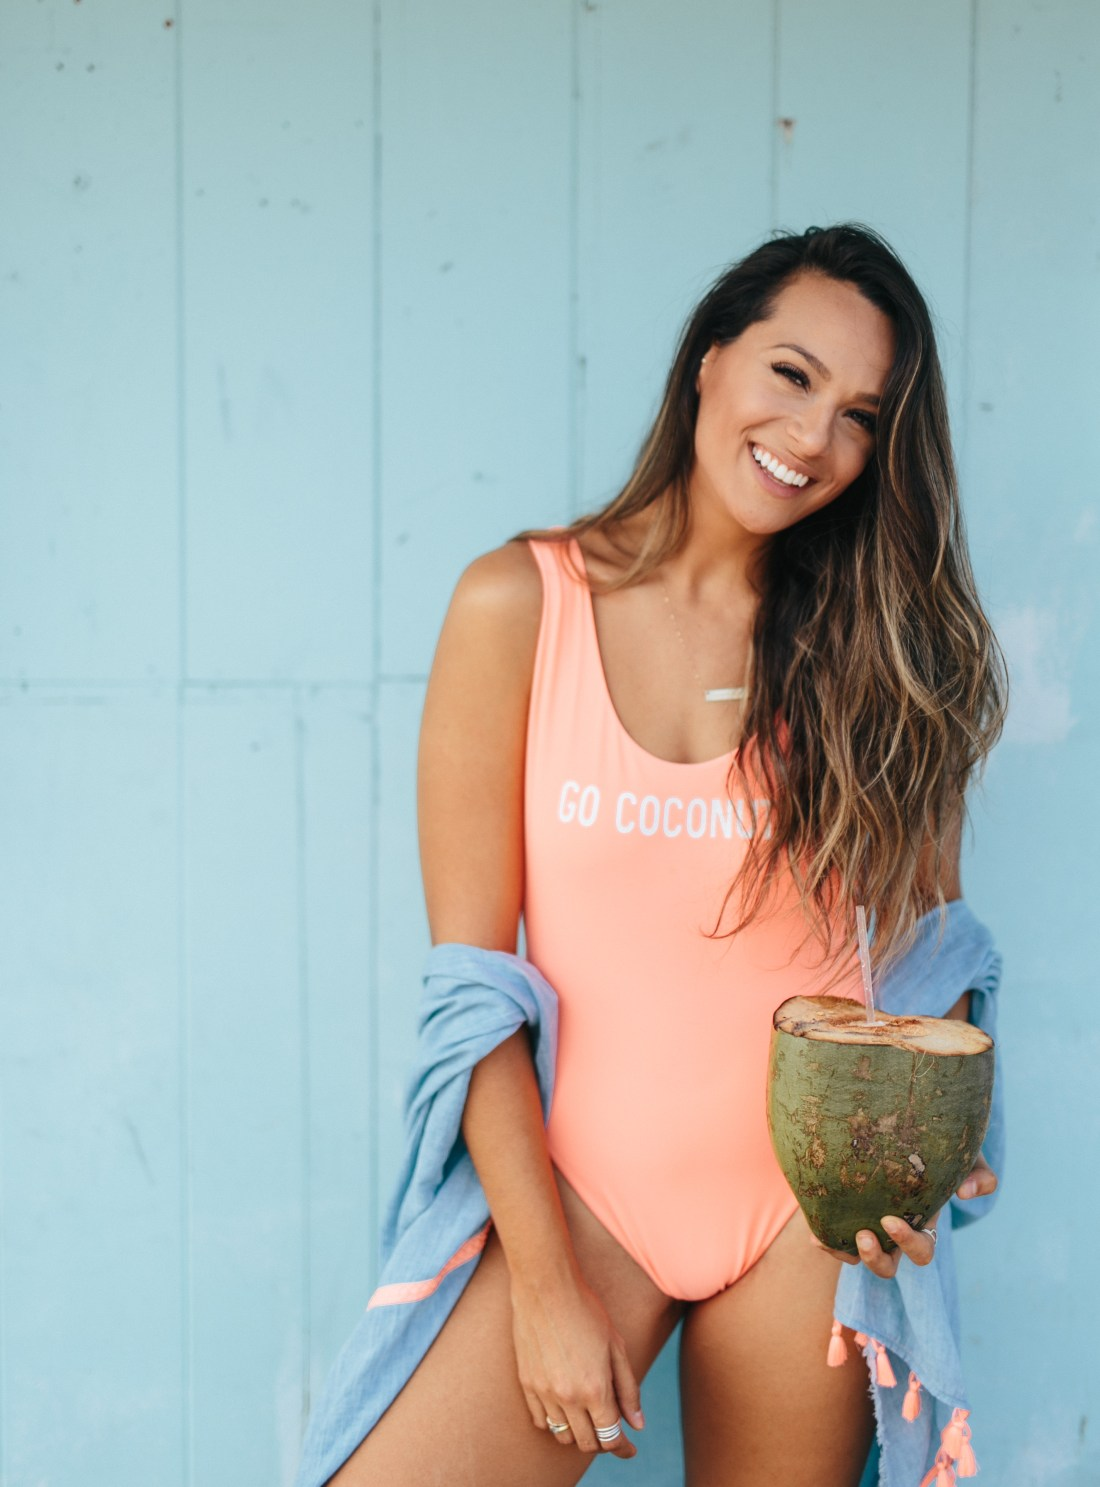 #AerieREAL Campaign   Why I'm #AerieREAL   How Hawaii Taught Me To Love My Body   Body Positive   Love The Skin You're In   Aerie Bikinis   Body Positivity –Love Yourself   Go Coconuts One Piece   Travel Blogger Shares Her Self Love Journey via @elanaloo + elanaloo.com